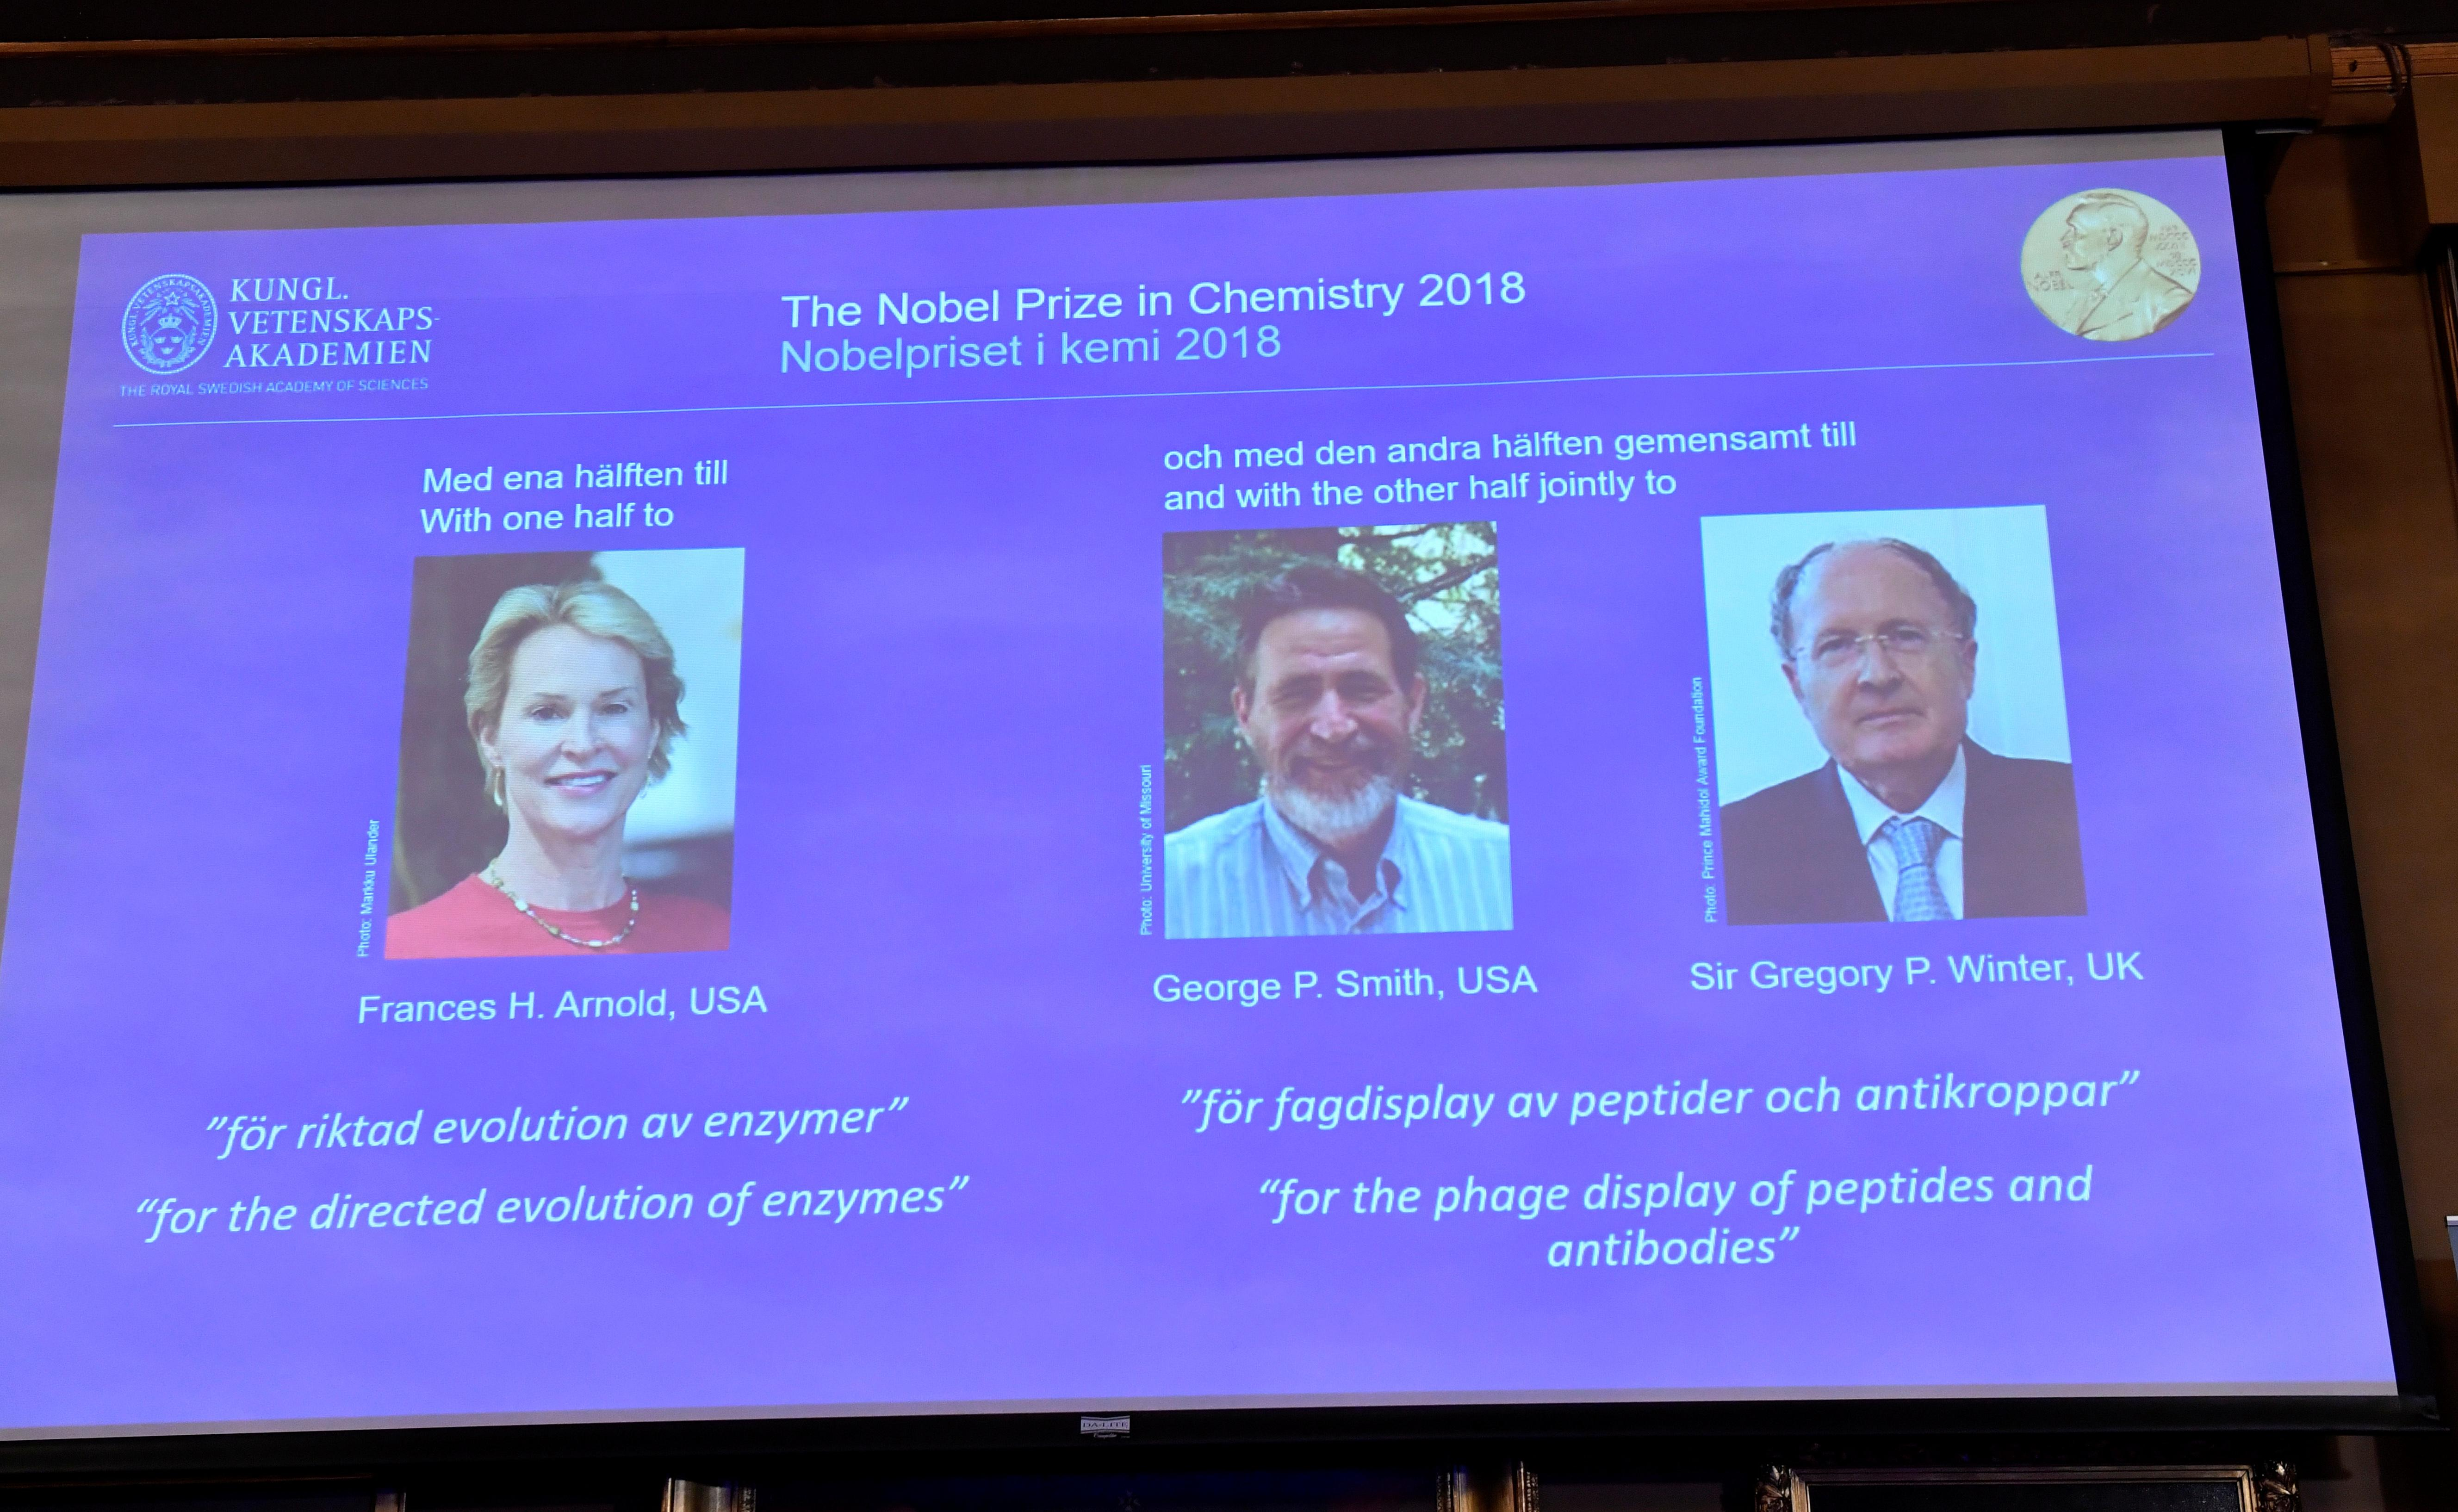 Pictures of the 2018 Nobel Prize laureates for chemistry: Frances H. Arnold of the United States, George P. Smith of the United States and Gregory P. Winter of Britain are displayed on a screen during the announcement at the Royal Swedish Academy of Sciences, in Stockholm, Sweden, October 3, 2018.  Jonas Ekstromer/TT News Agency/via